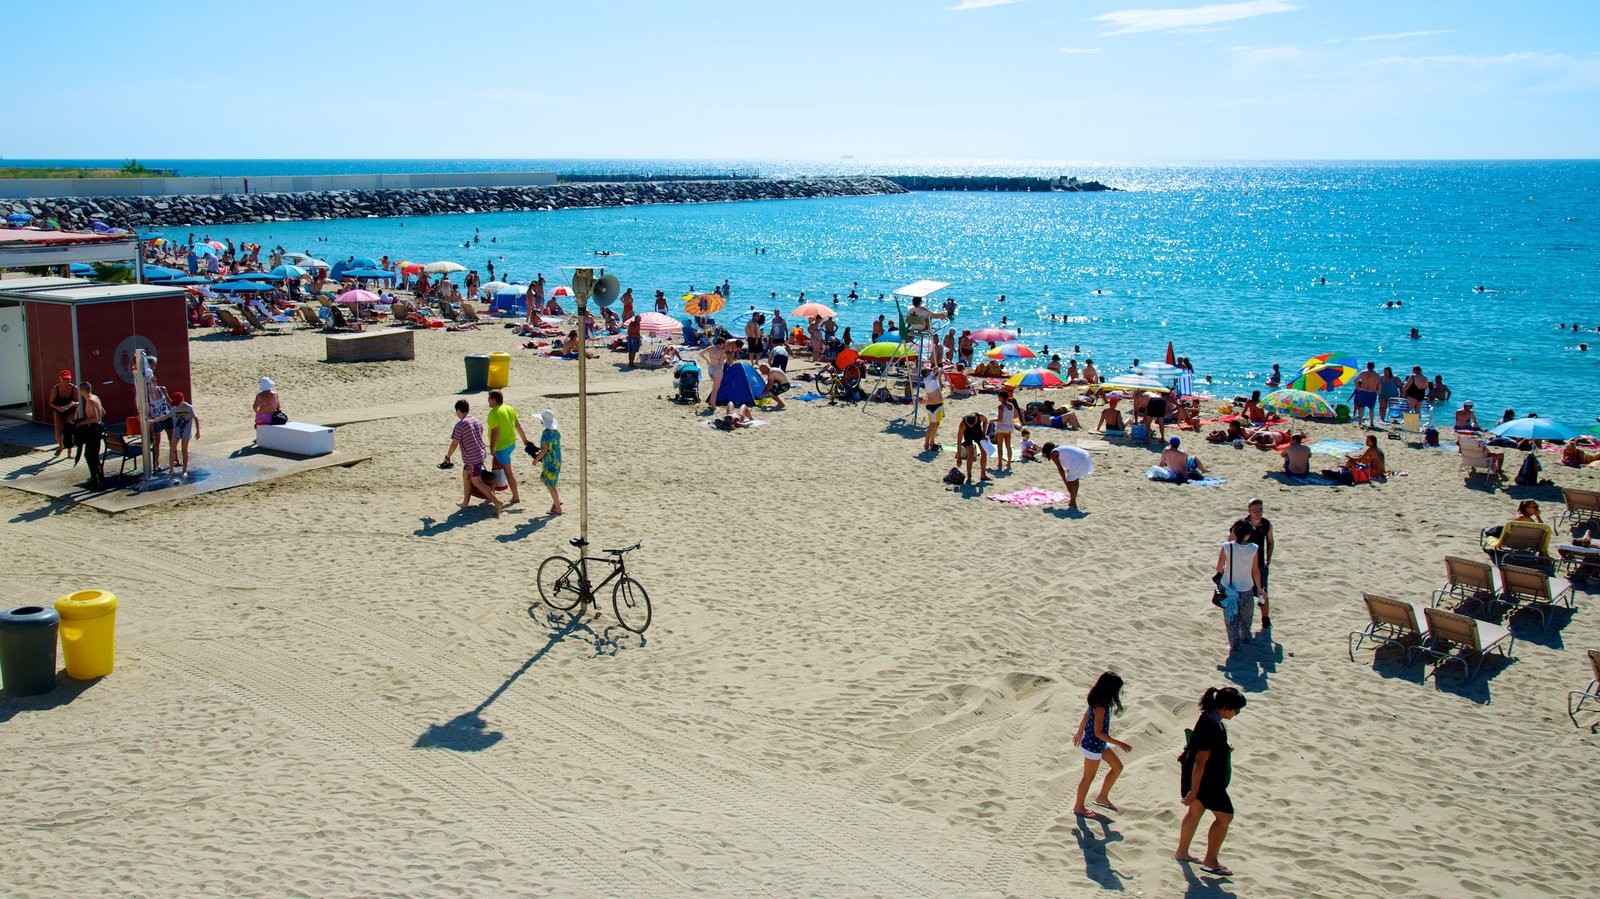 Llevant Beach which includes a sandy beach and general coastal views as well as a small group of people